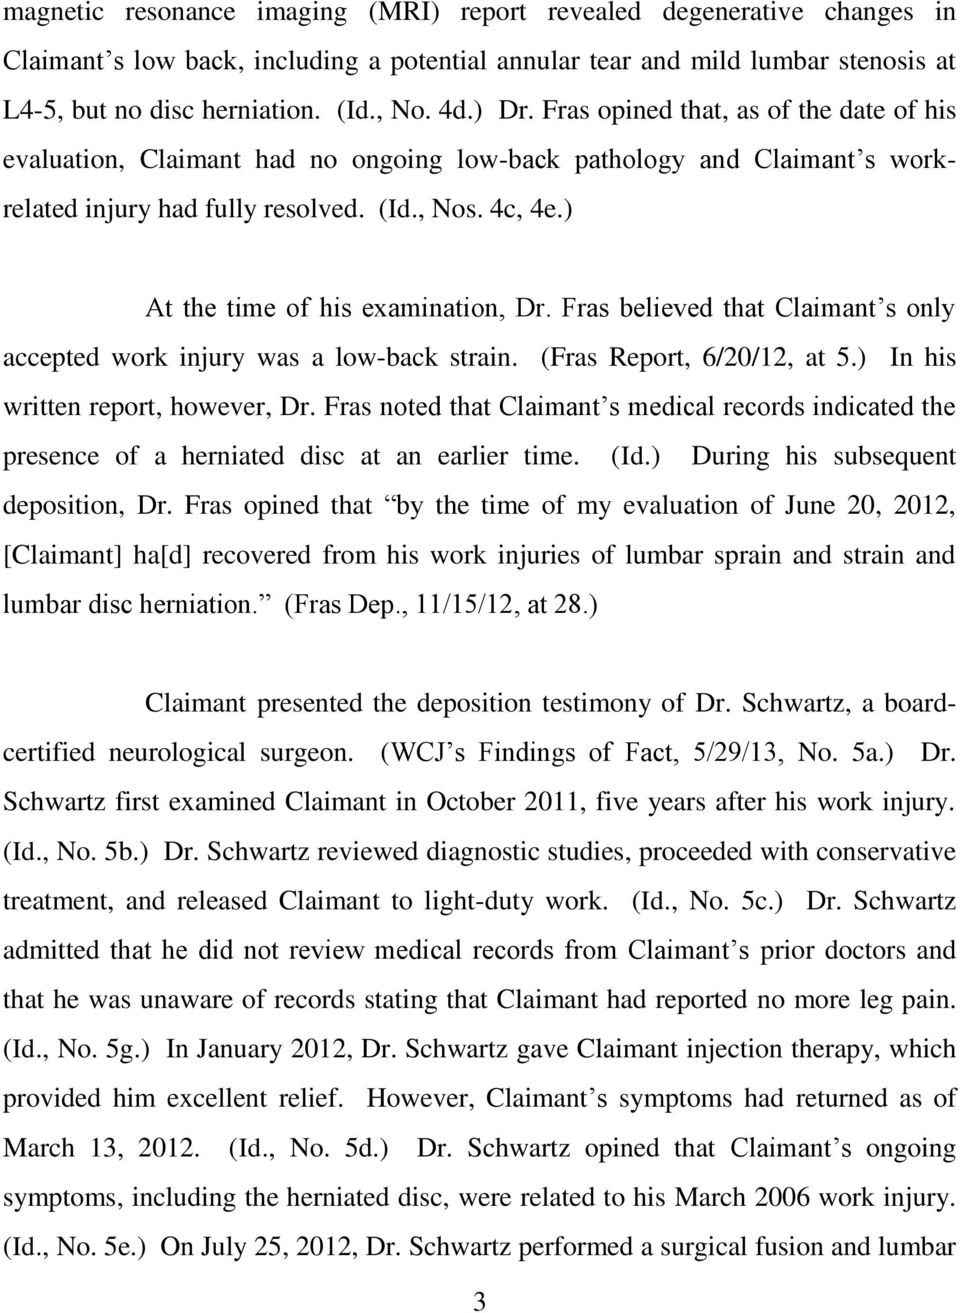 ) At the time of his examination, Dr. Fras believed that Claimant s only accepted work injury was a low-back strain. (Fras Report, 6/20/12, at 5.) In his written report, however, Dr.